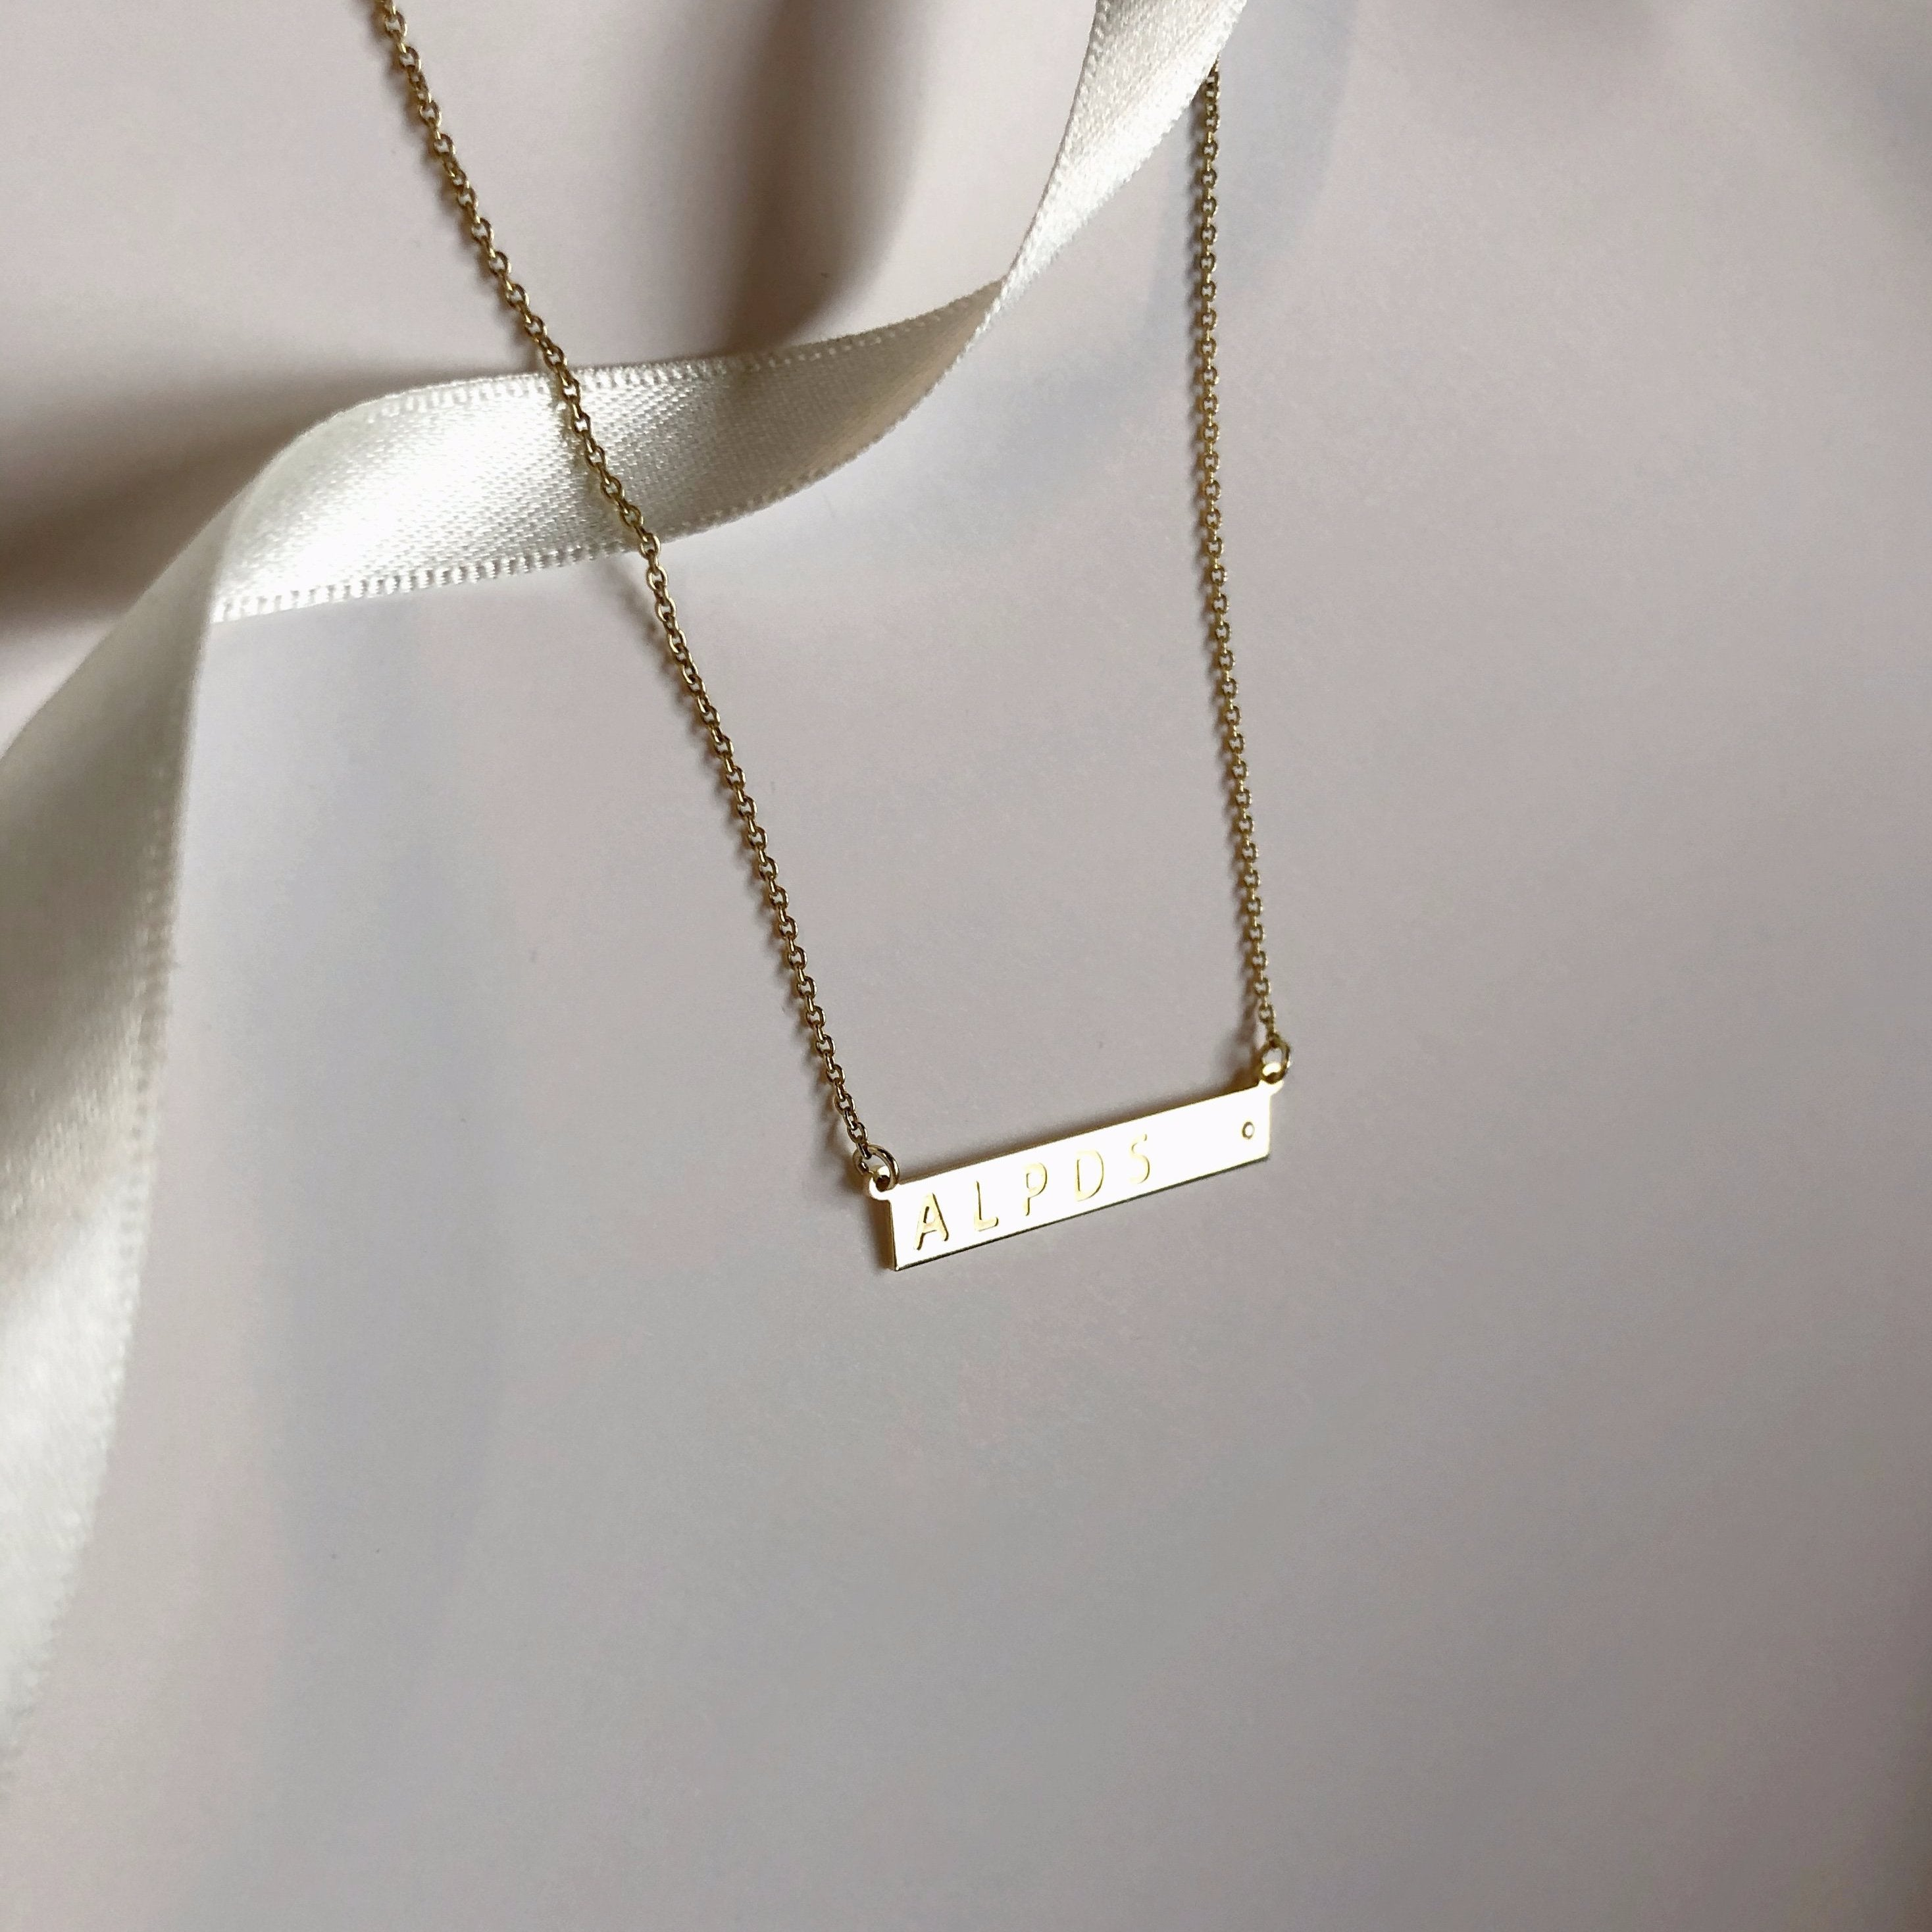 LE BAR necklace - BYVELA designer jewellery in silver and gold